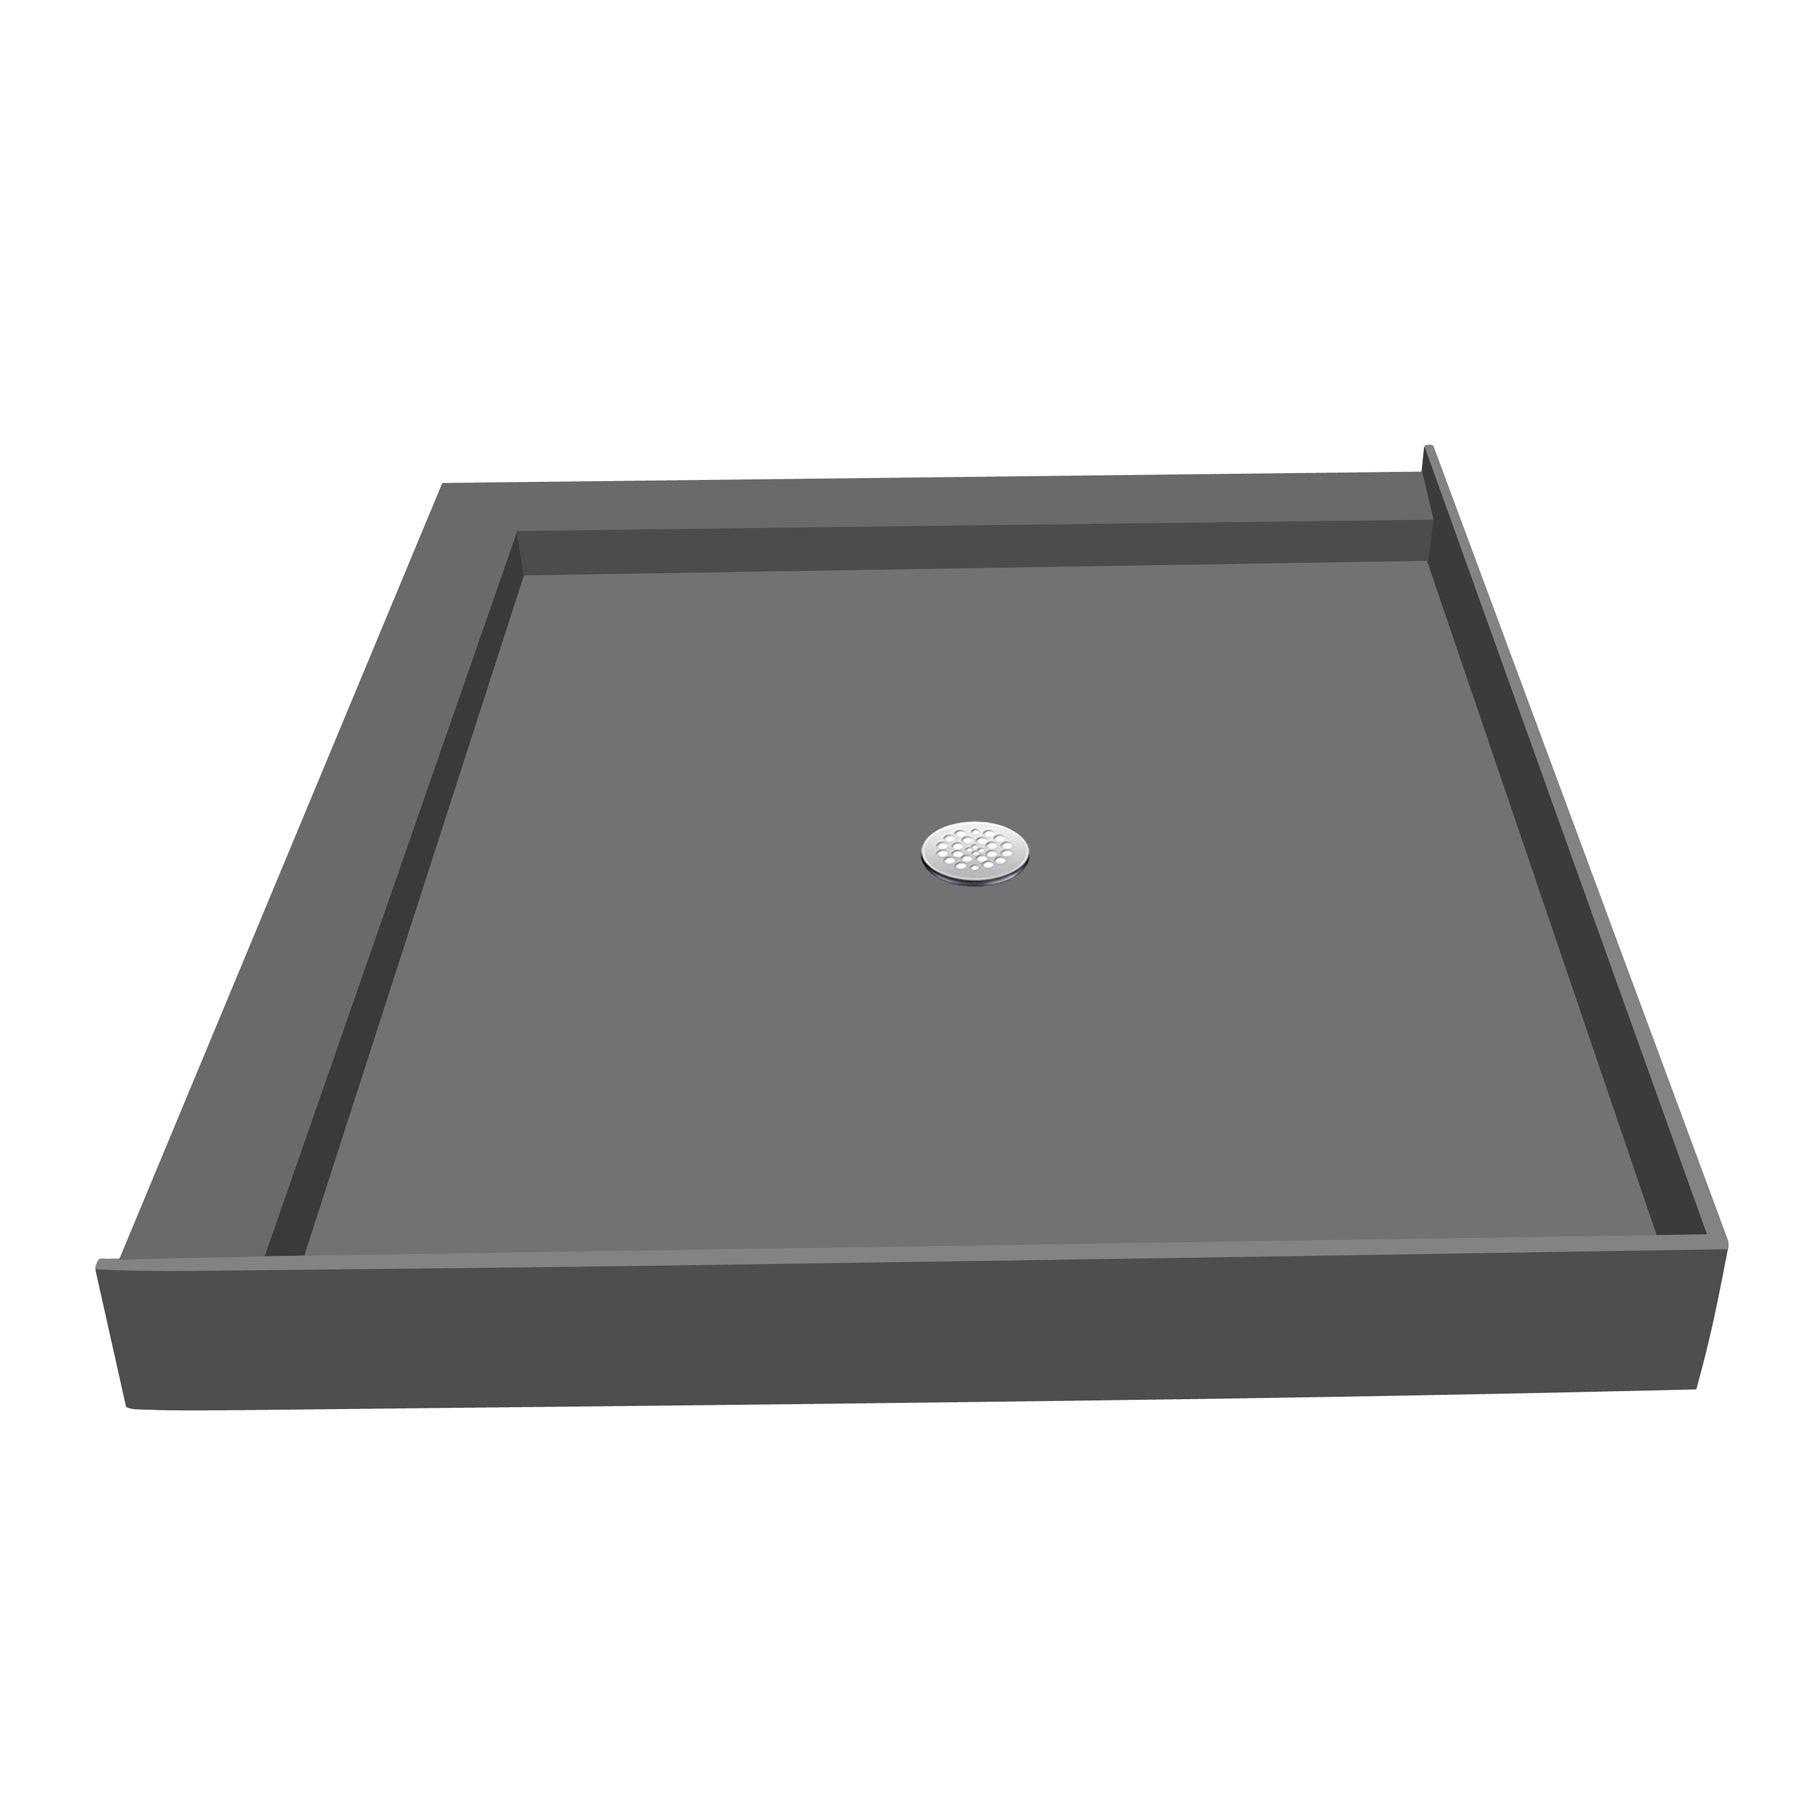 Exceptionnel Shop Redi Base 30 X 48 Shower Pan Center Drain Left Dual Curb   Free  Shipping Today   Overstock.com   10124404